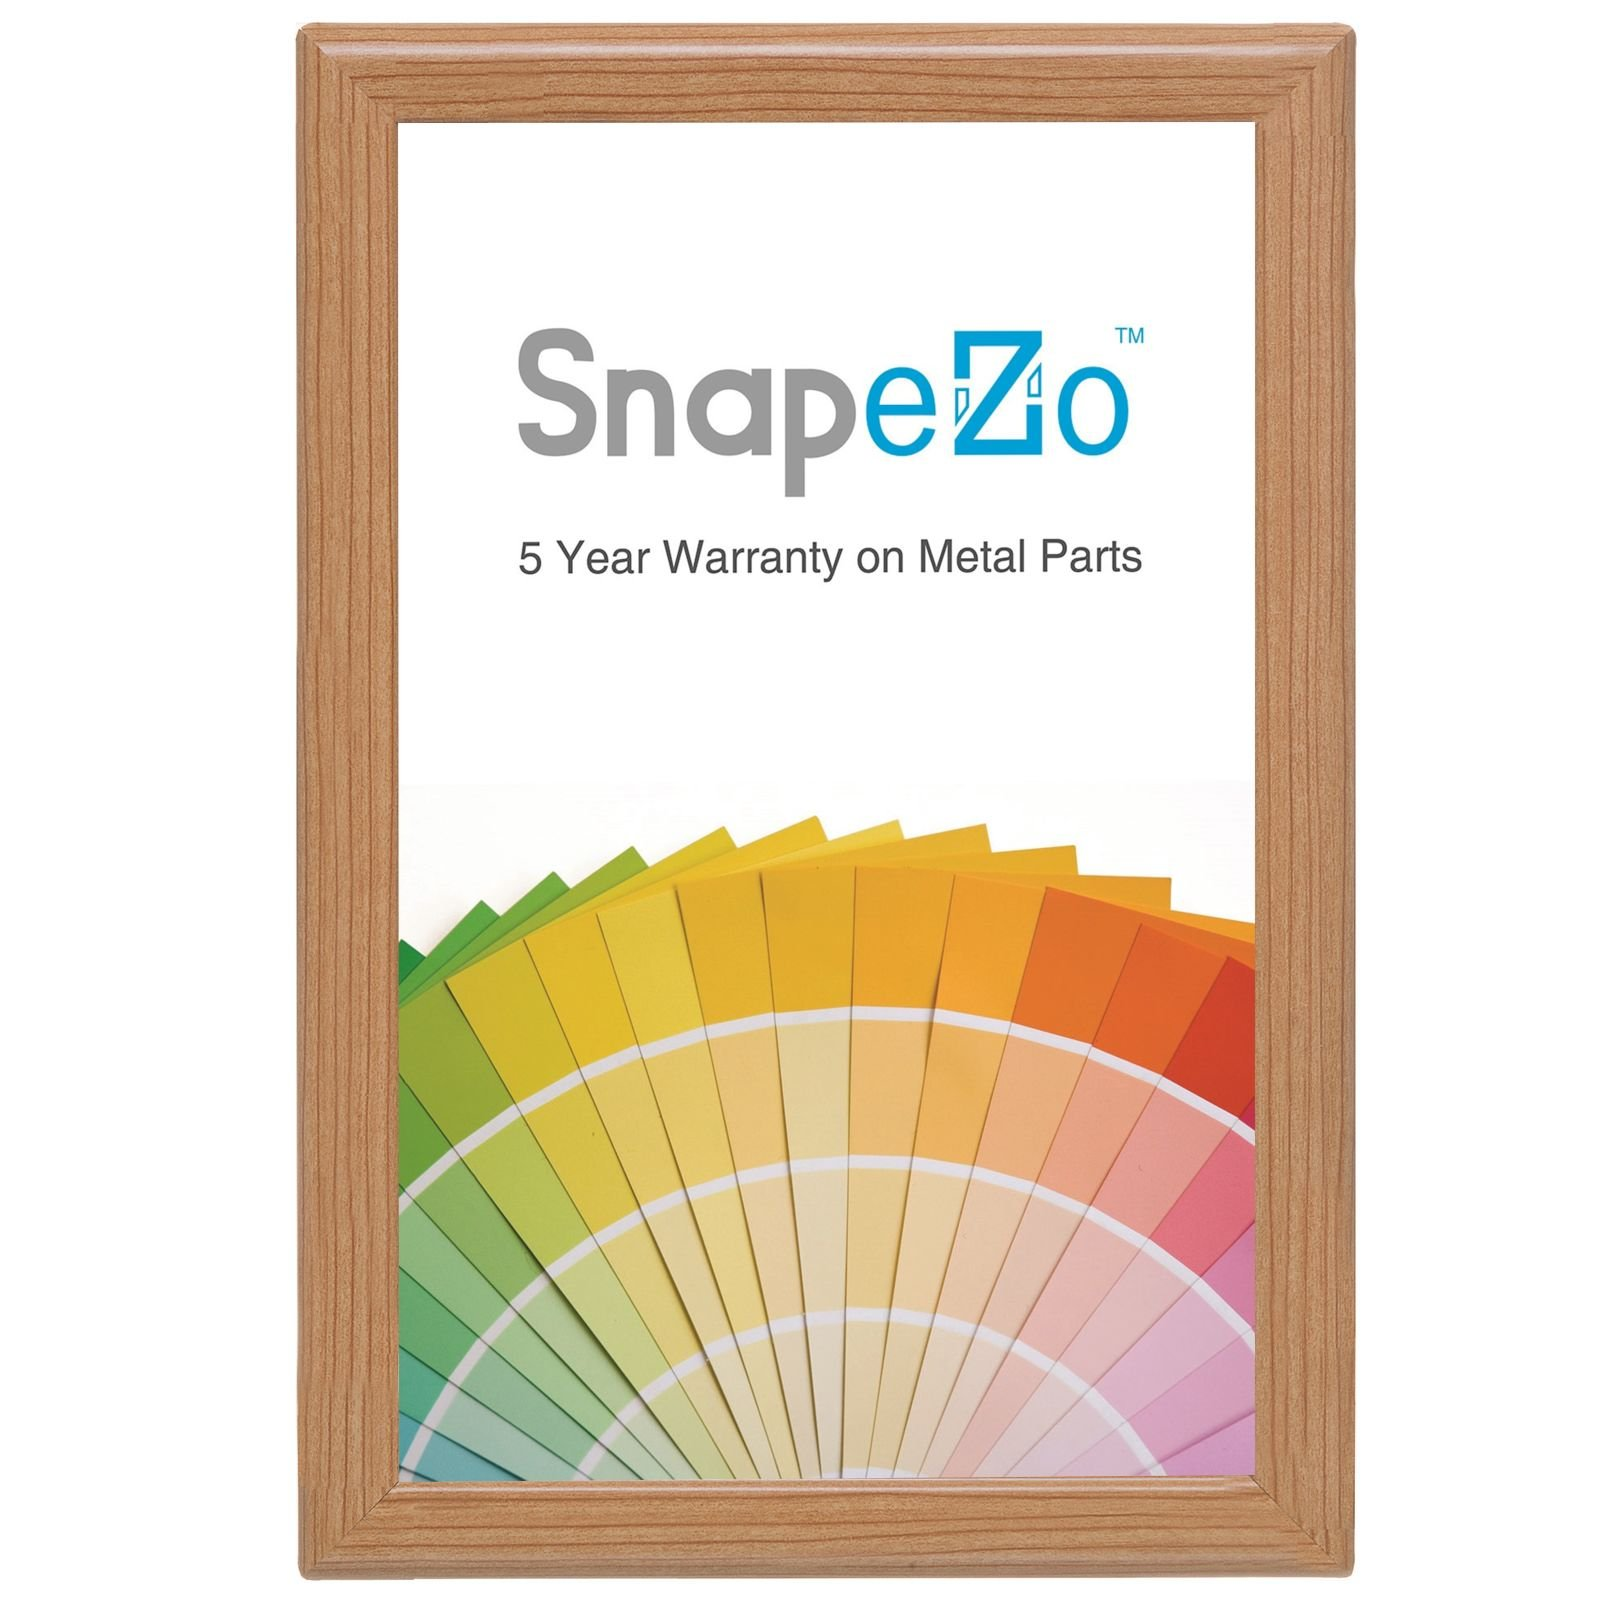 SnapeZo Notice Frame 11x17 Inches, Light Wood Effect 1.25'' Aluminum Profile, Front-Loading Snap Frame, Wall Mounting, Professional Series